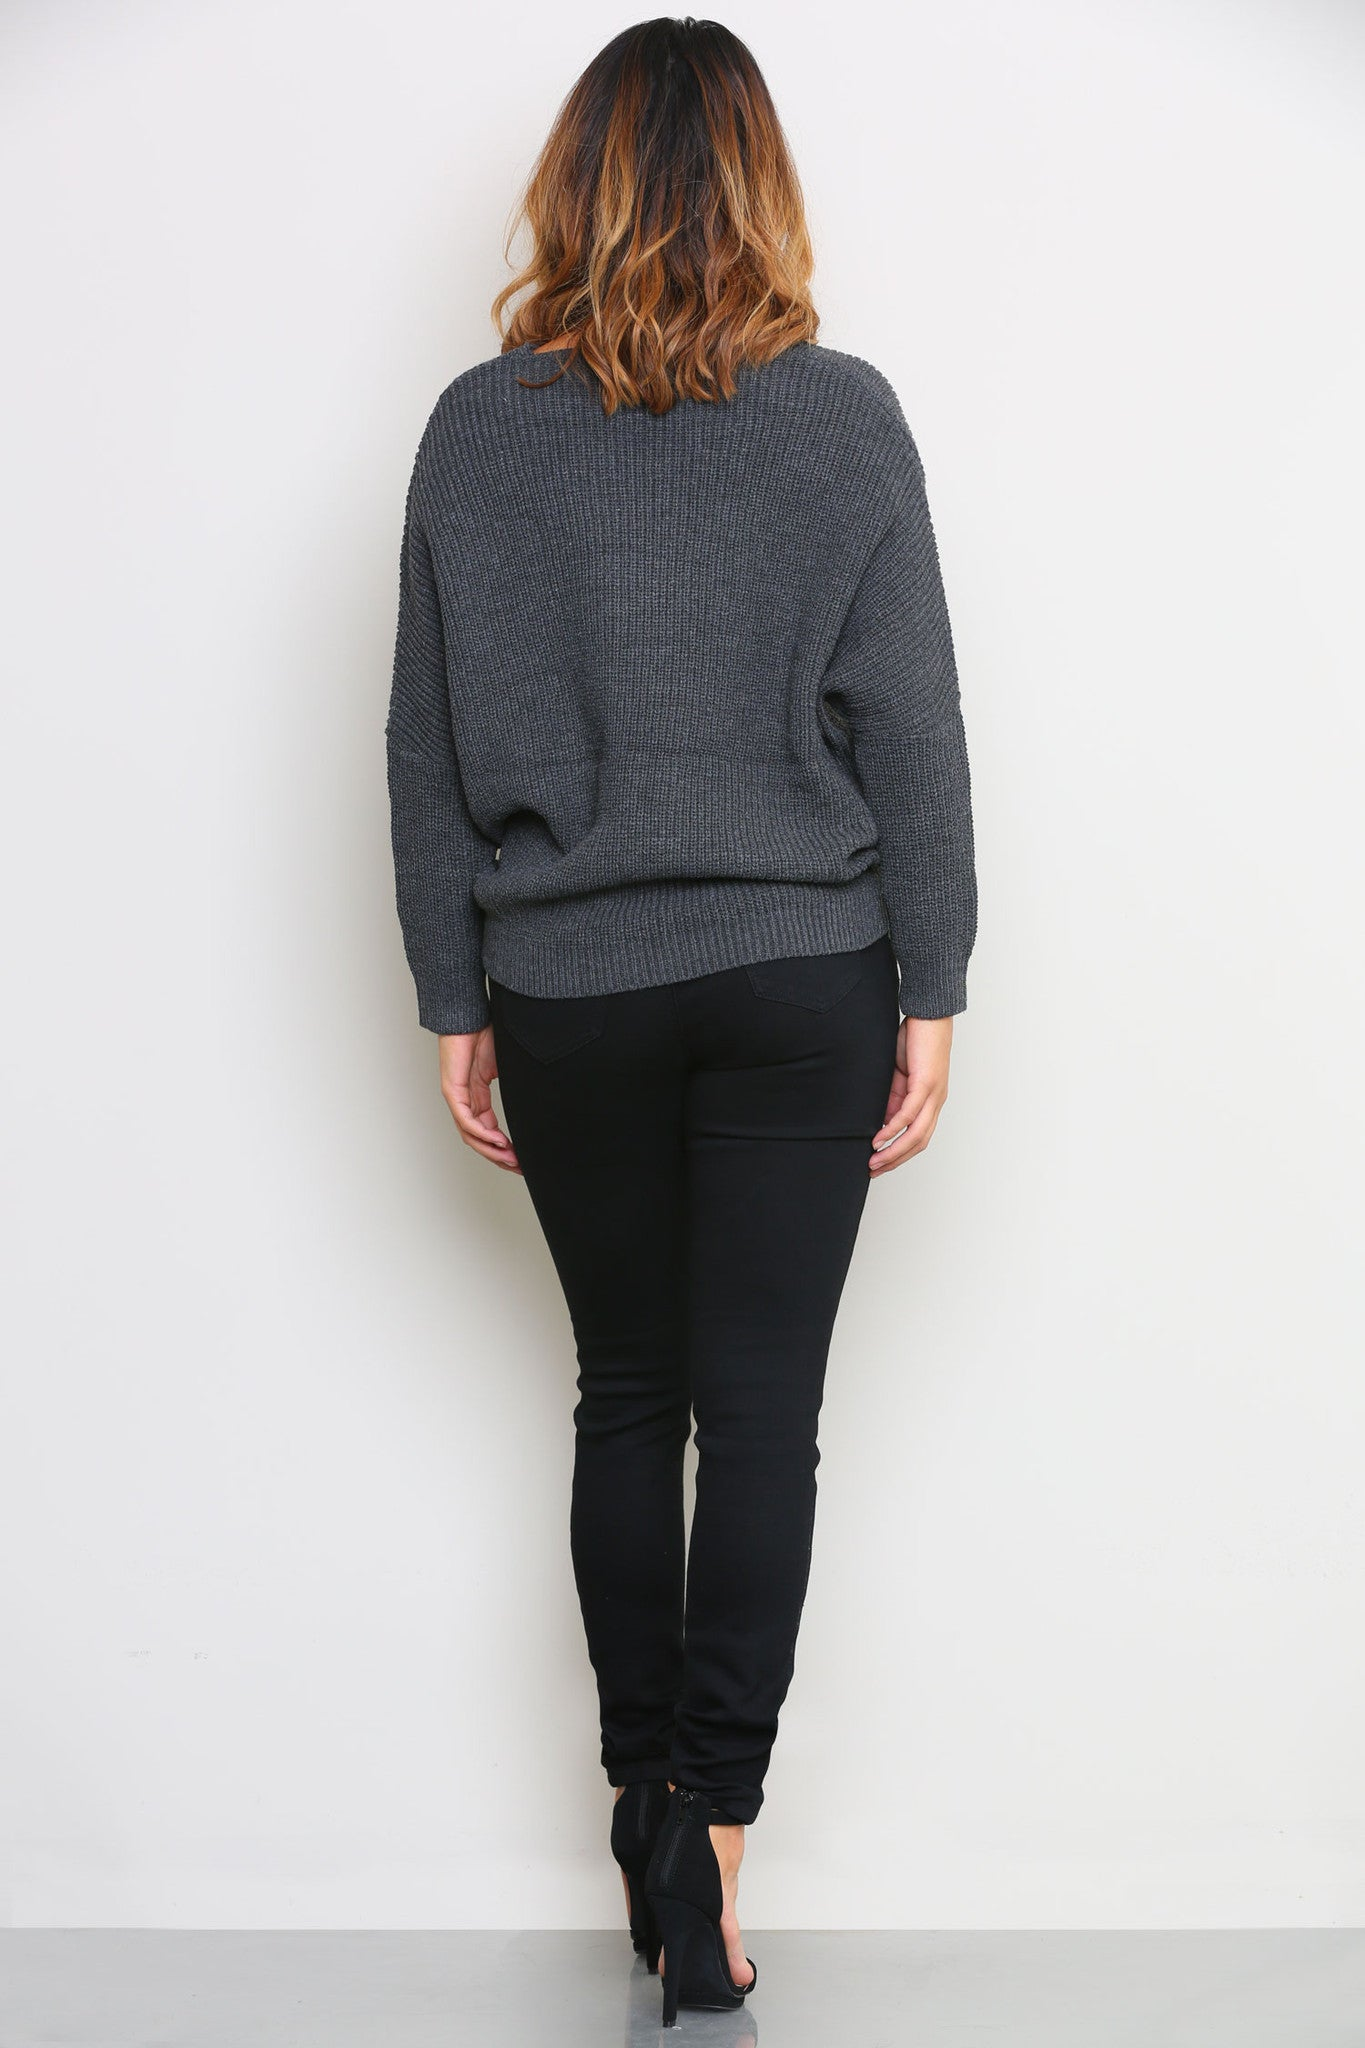 CLAIRE SWEATER - Glam Envy - 3